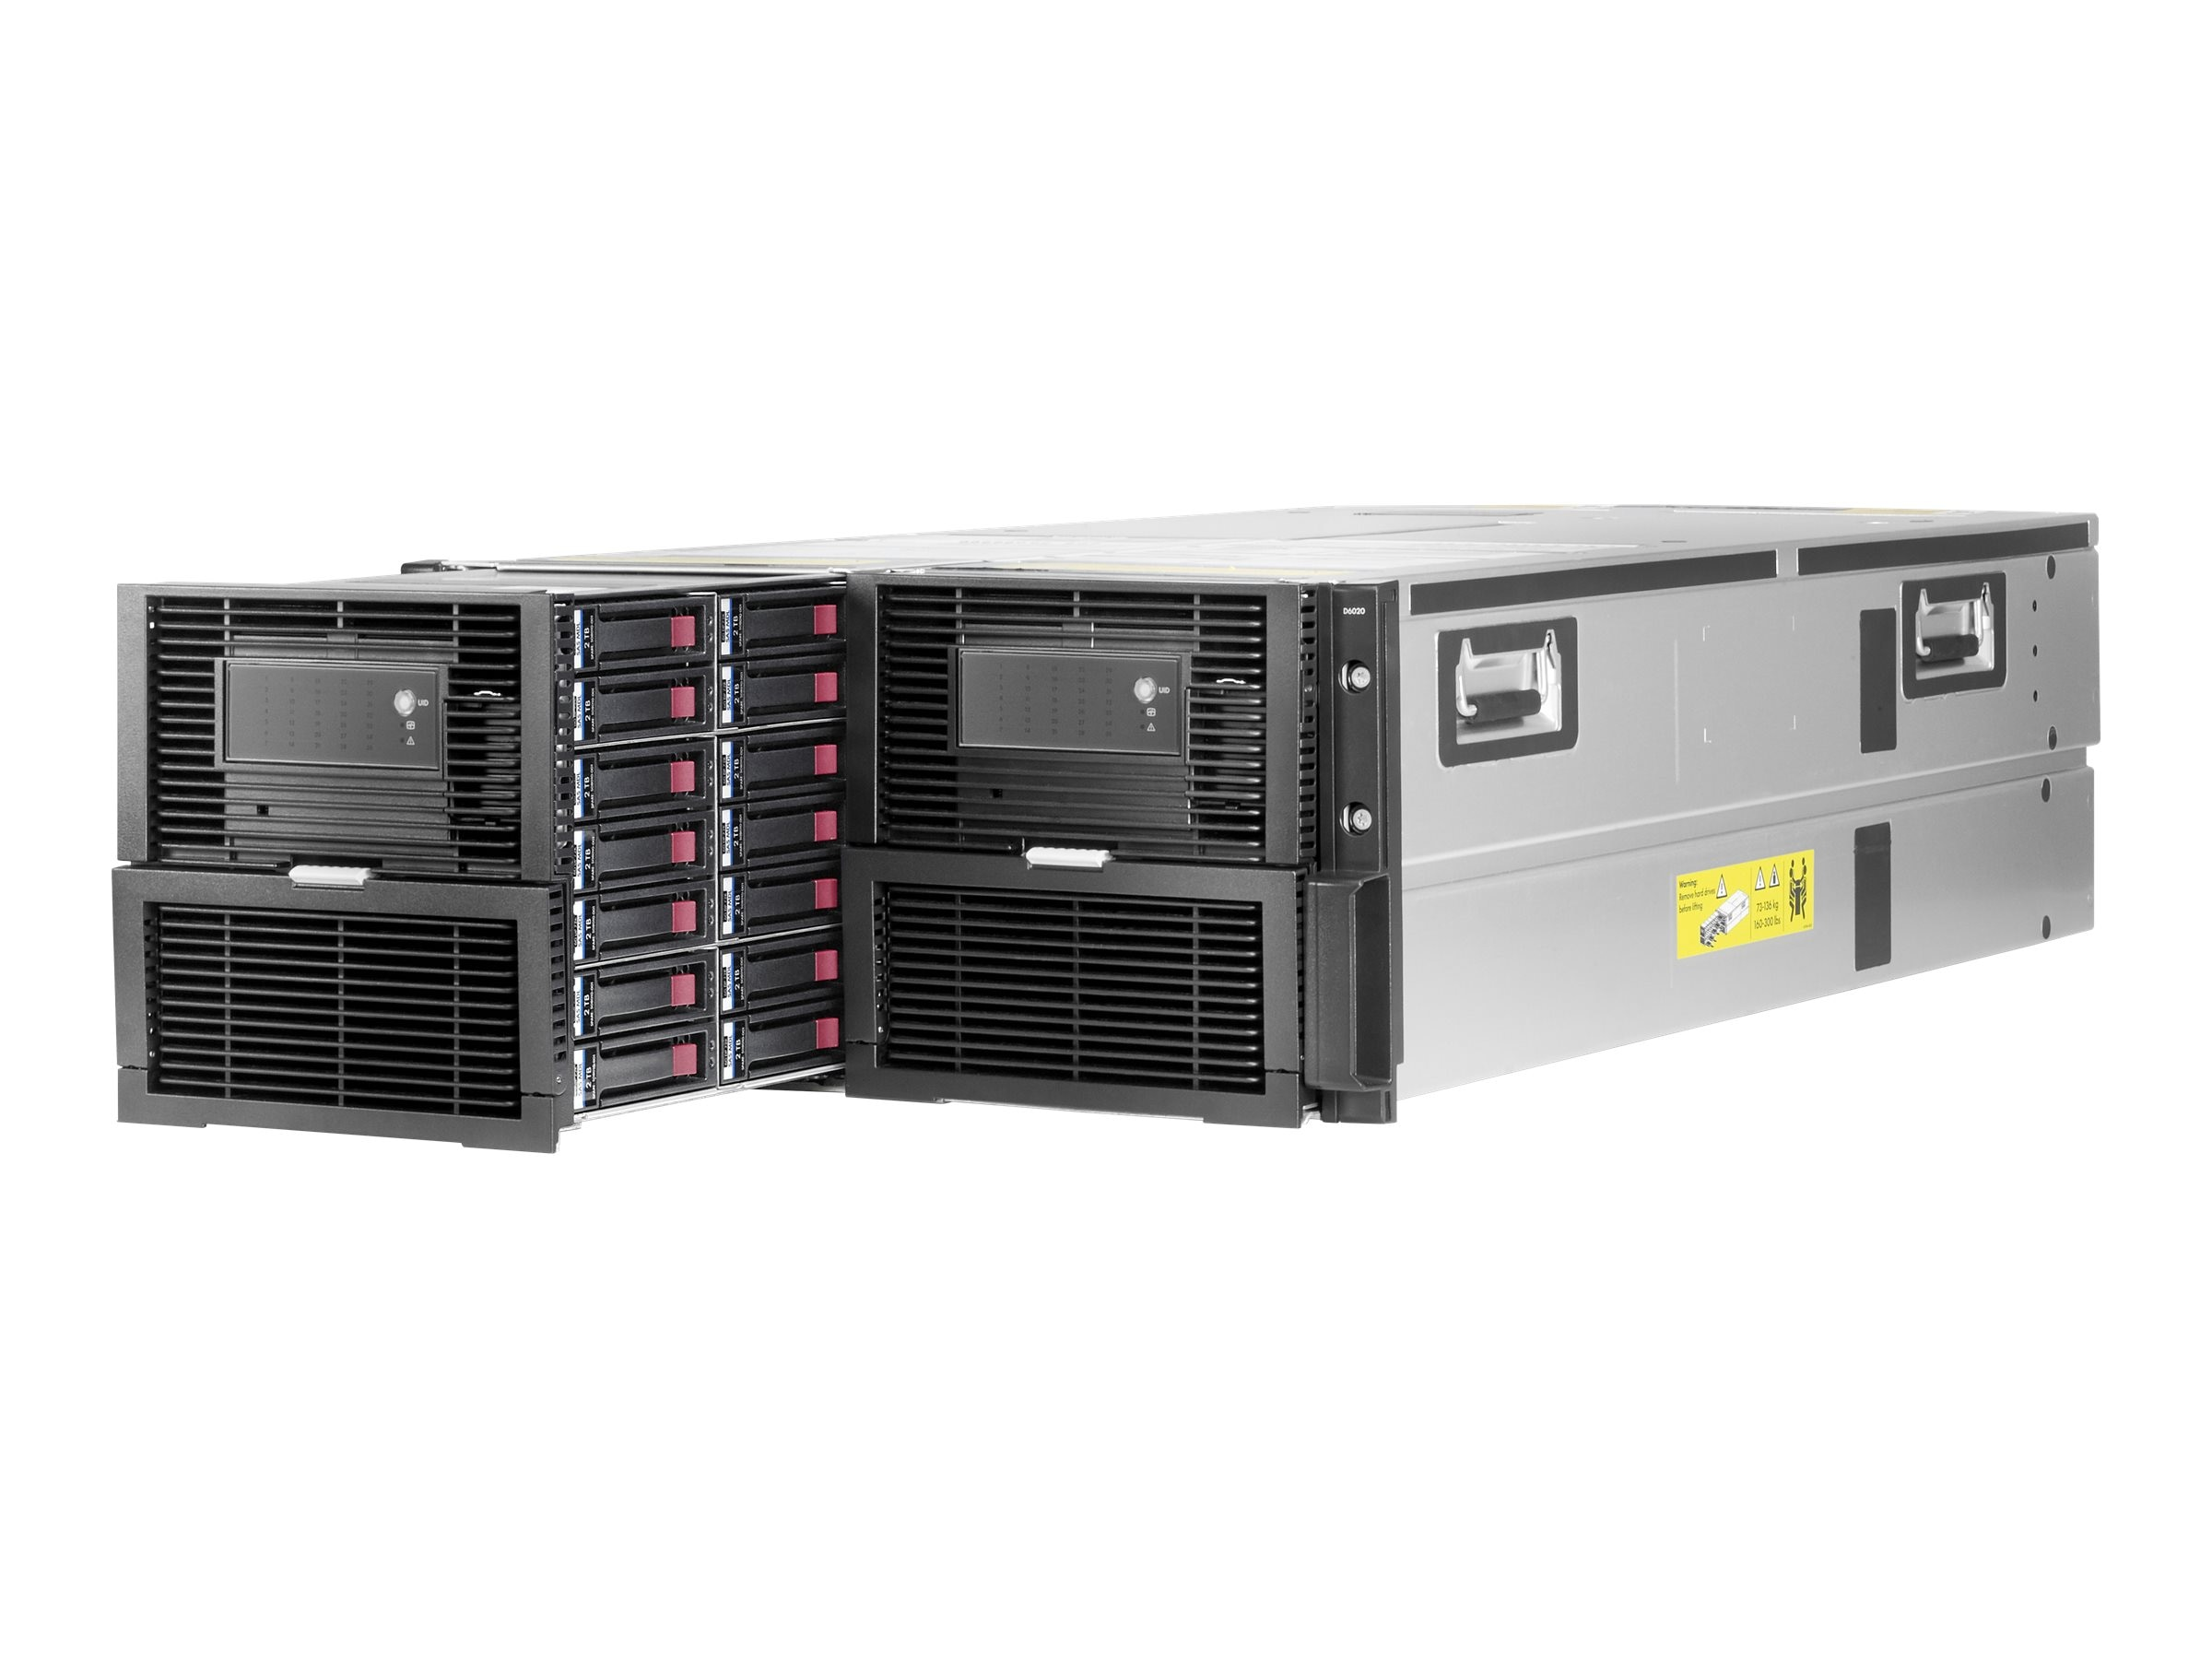 Hewlett Packard Enterprise K2Q25A Image 1